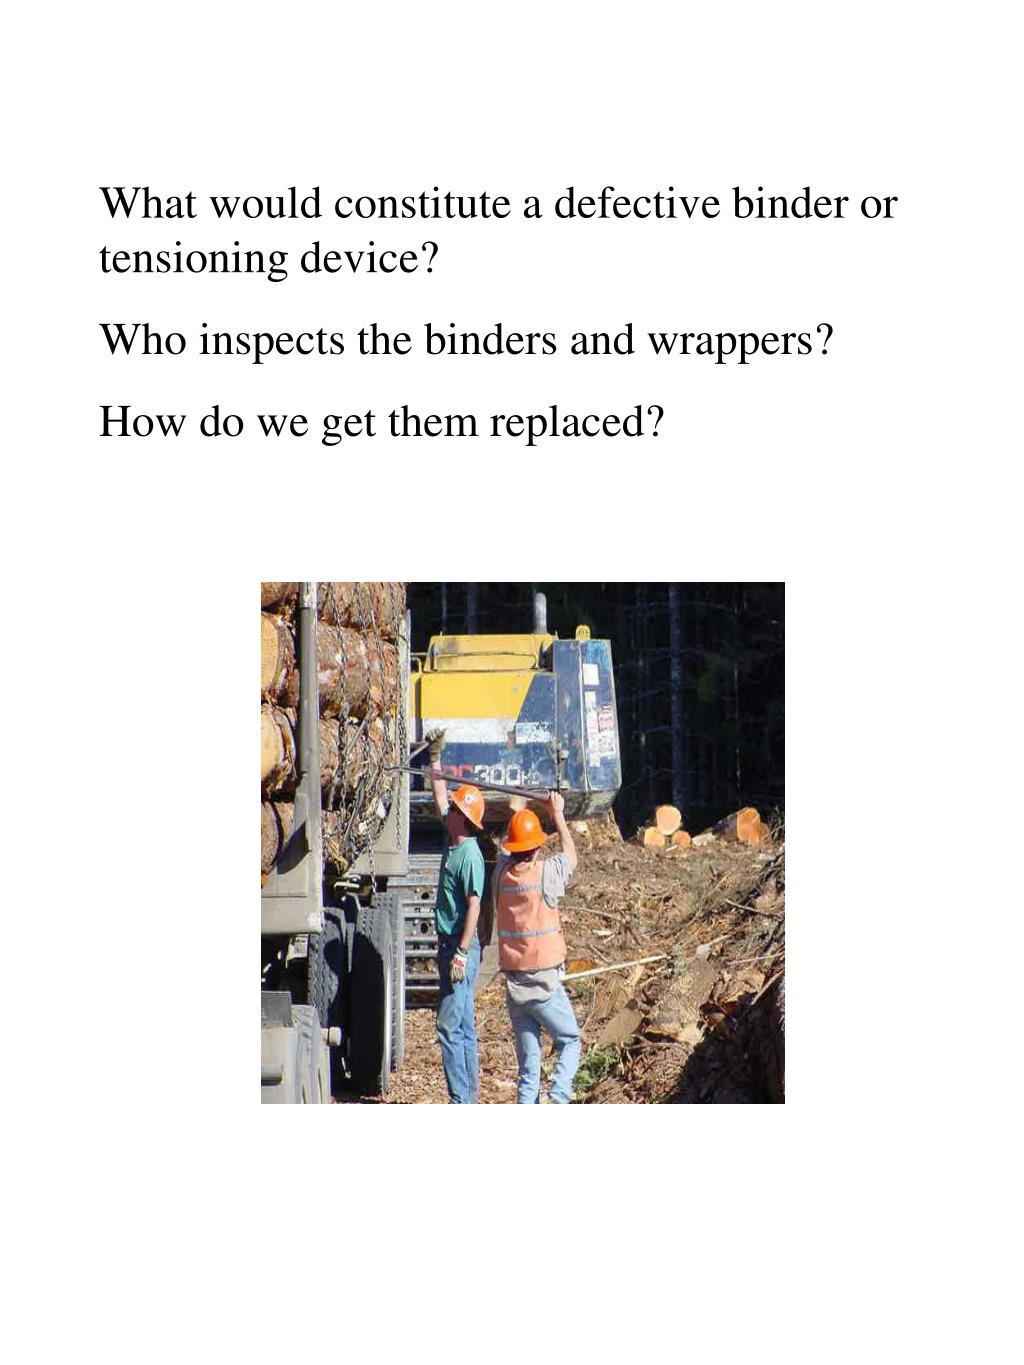 What would constitute a defective binder or tensioning device?